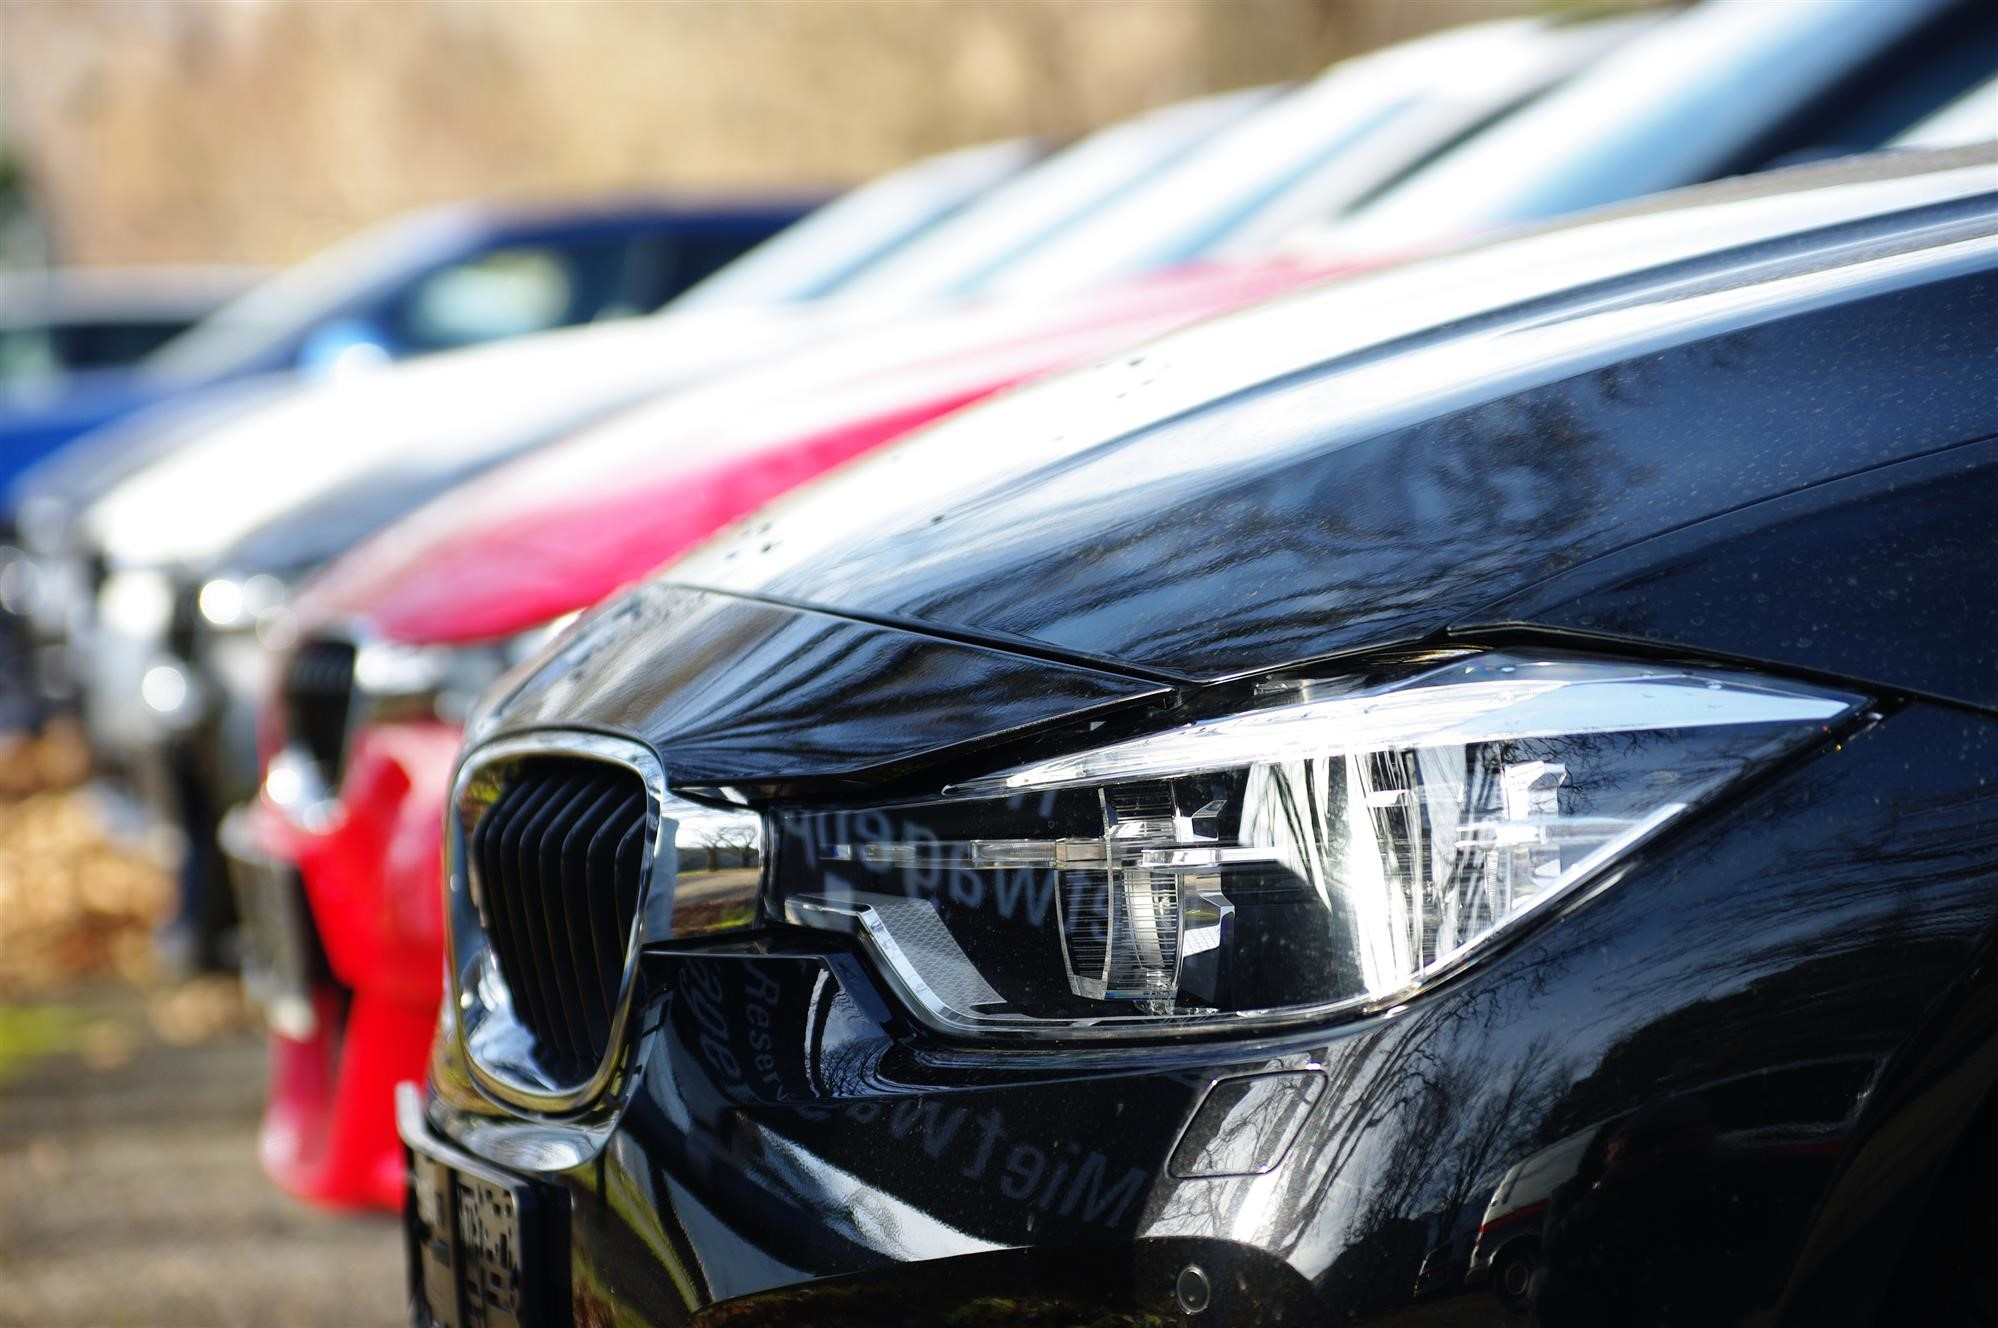 Automotive myths that some still believe in